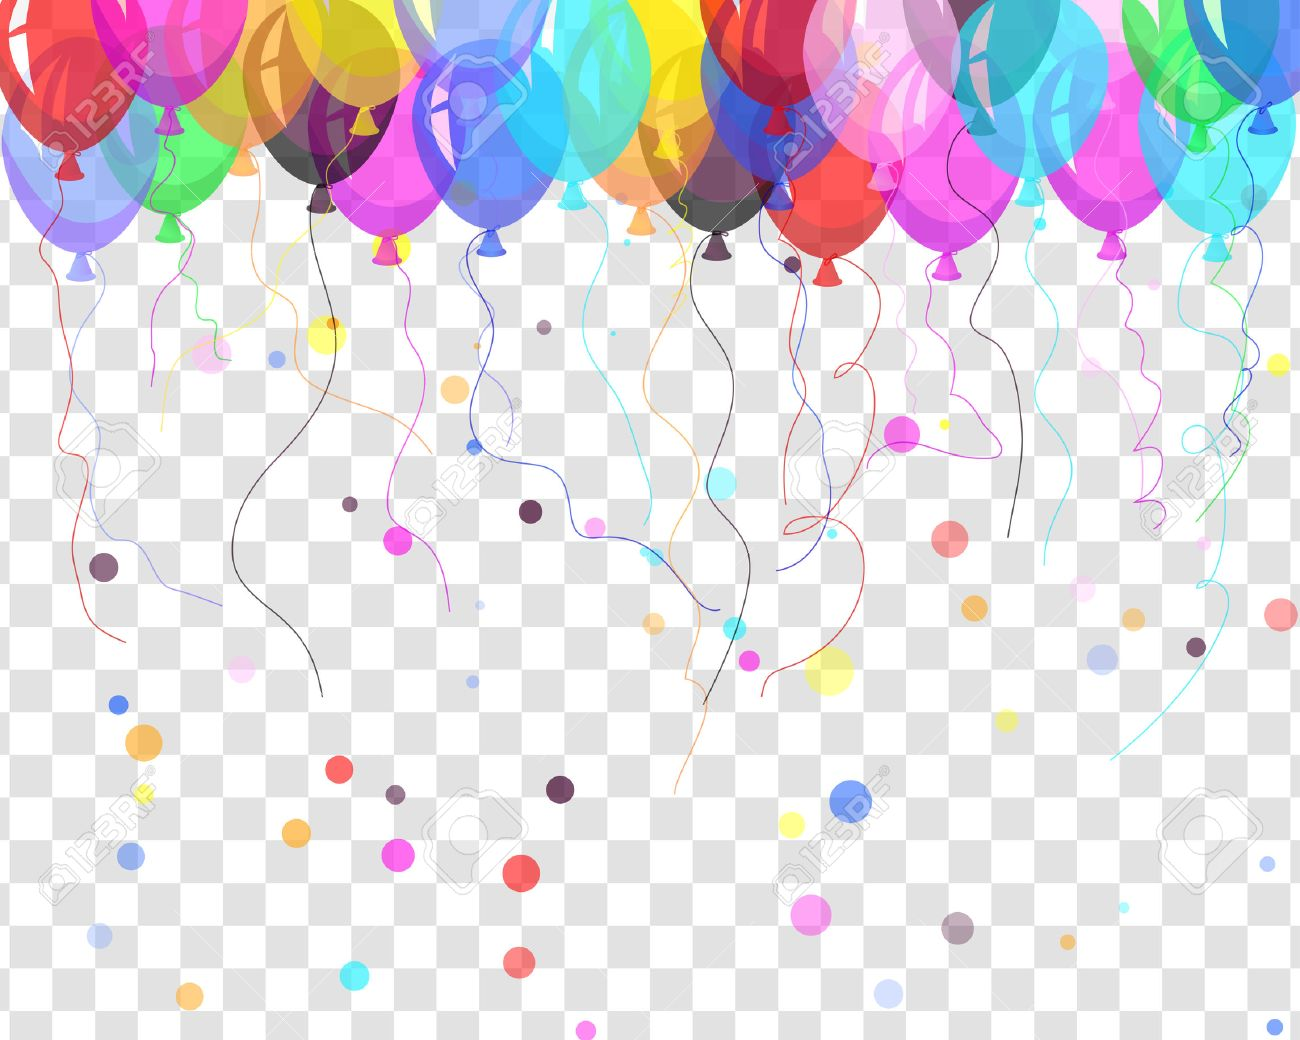 Transparent colorful balloons in air on gray grid background. Vector illustration. - 53410365